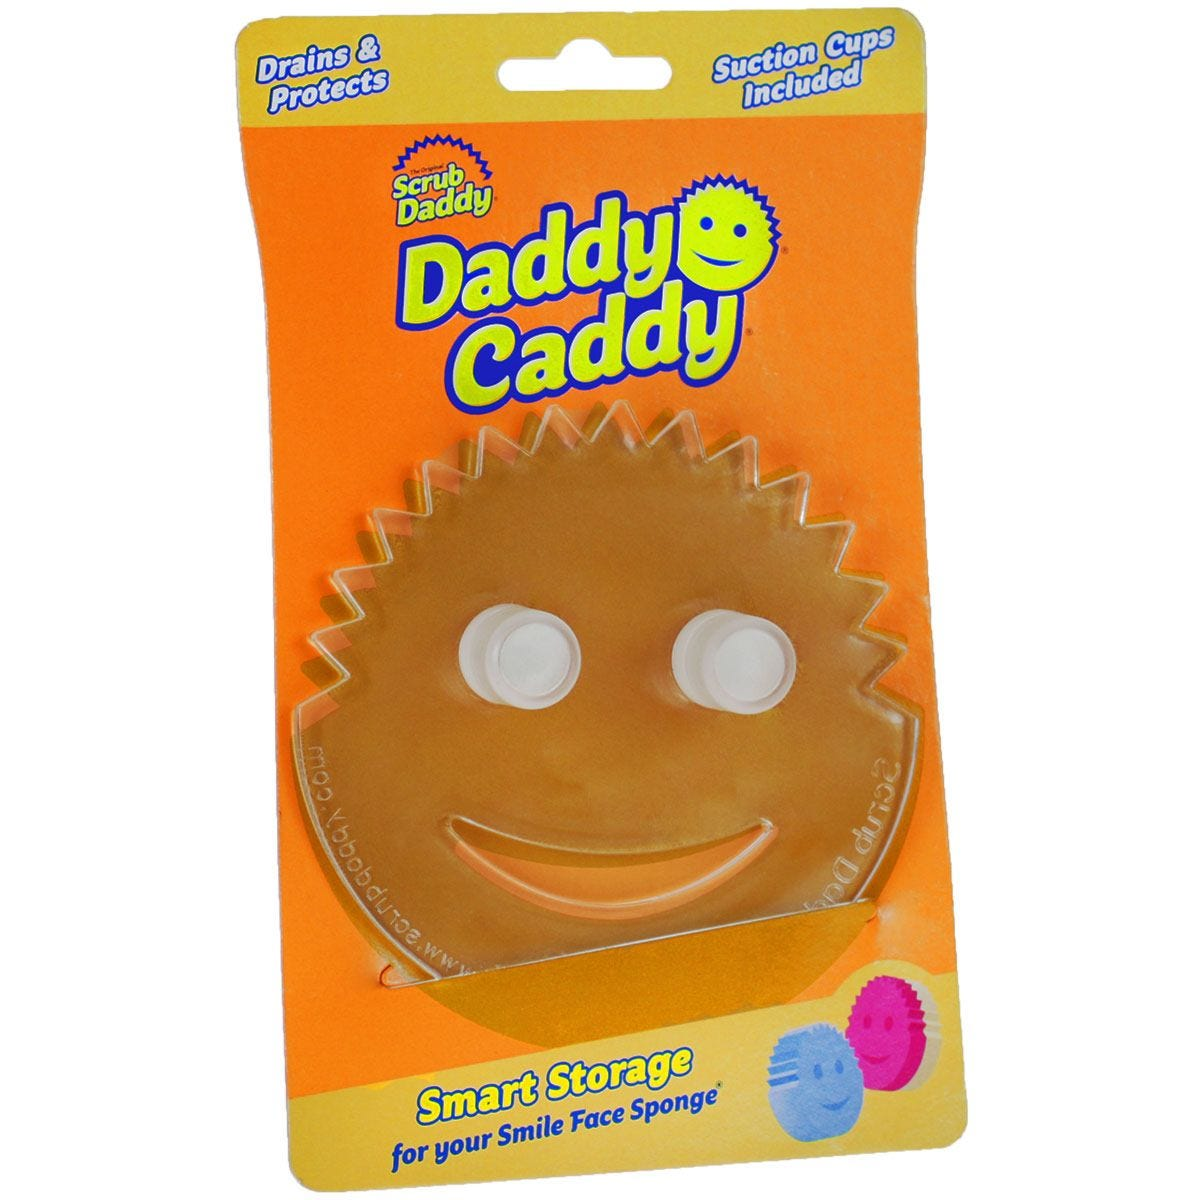 Scrub Daddy Caddy - Clear